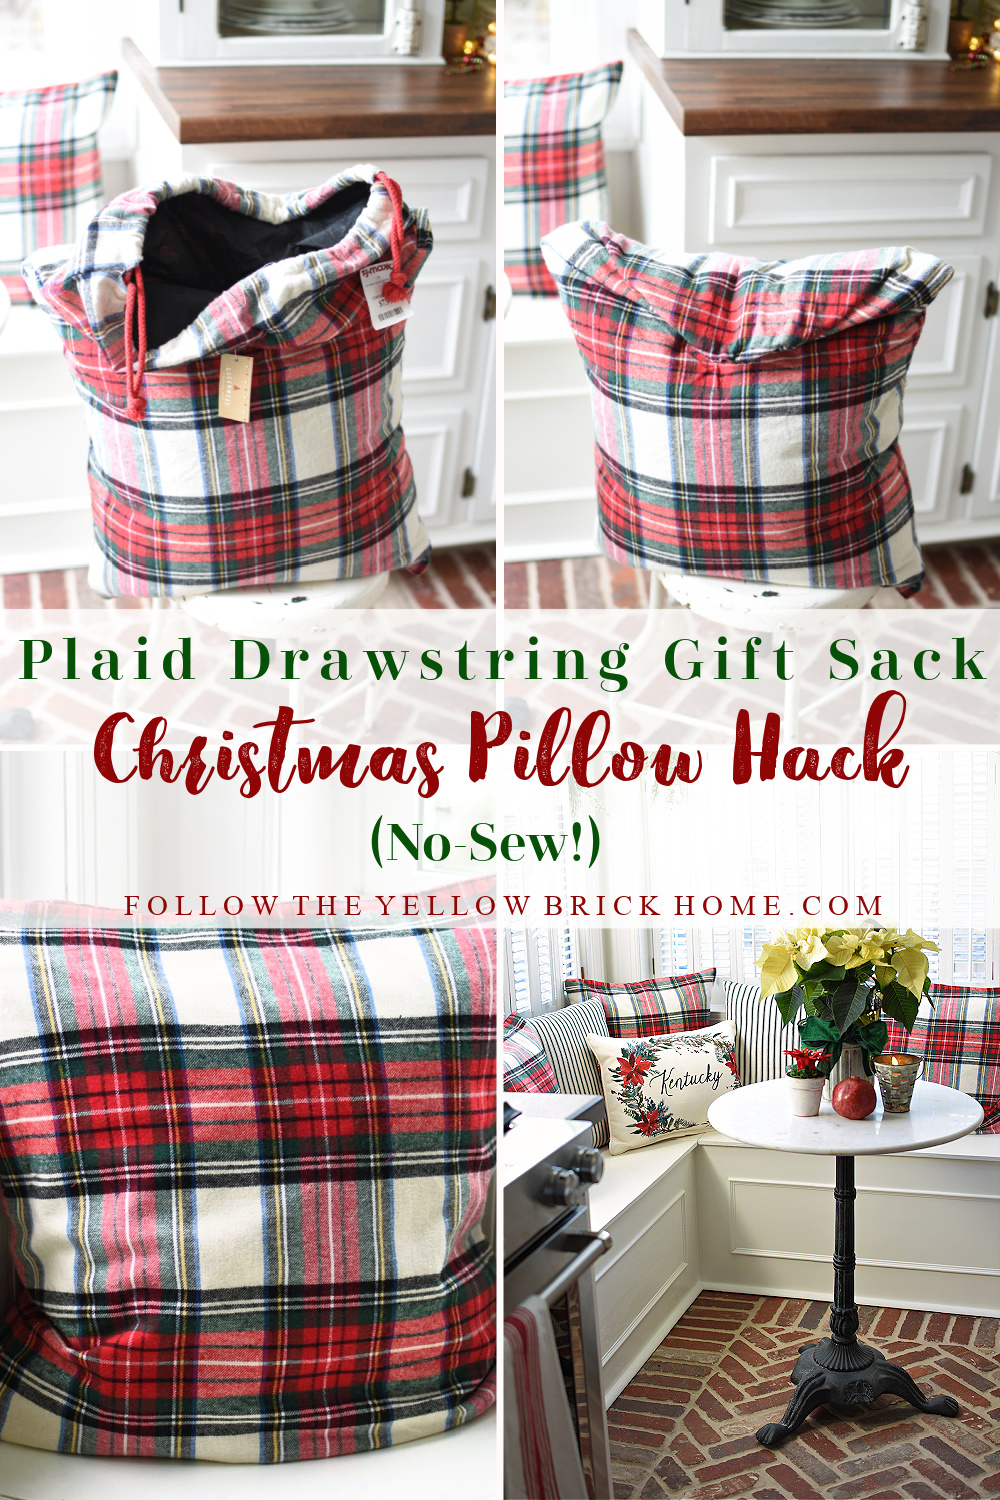 Plaid Drawstring Gift Sack Christmas Pillow Hack how to make a no-sew pillow cover from a drawstring Giftbag plaid christmas pillows #plaid #plaidpillows